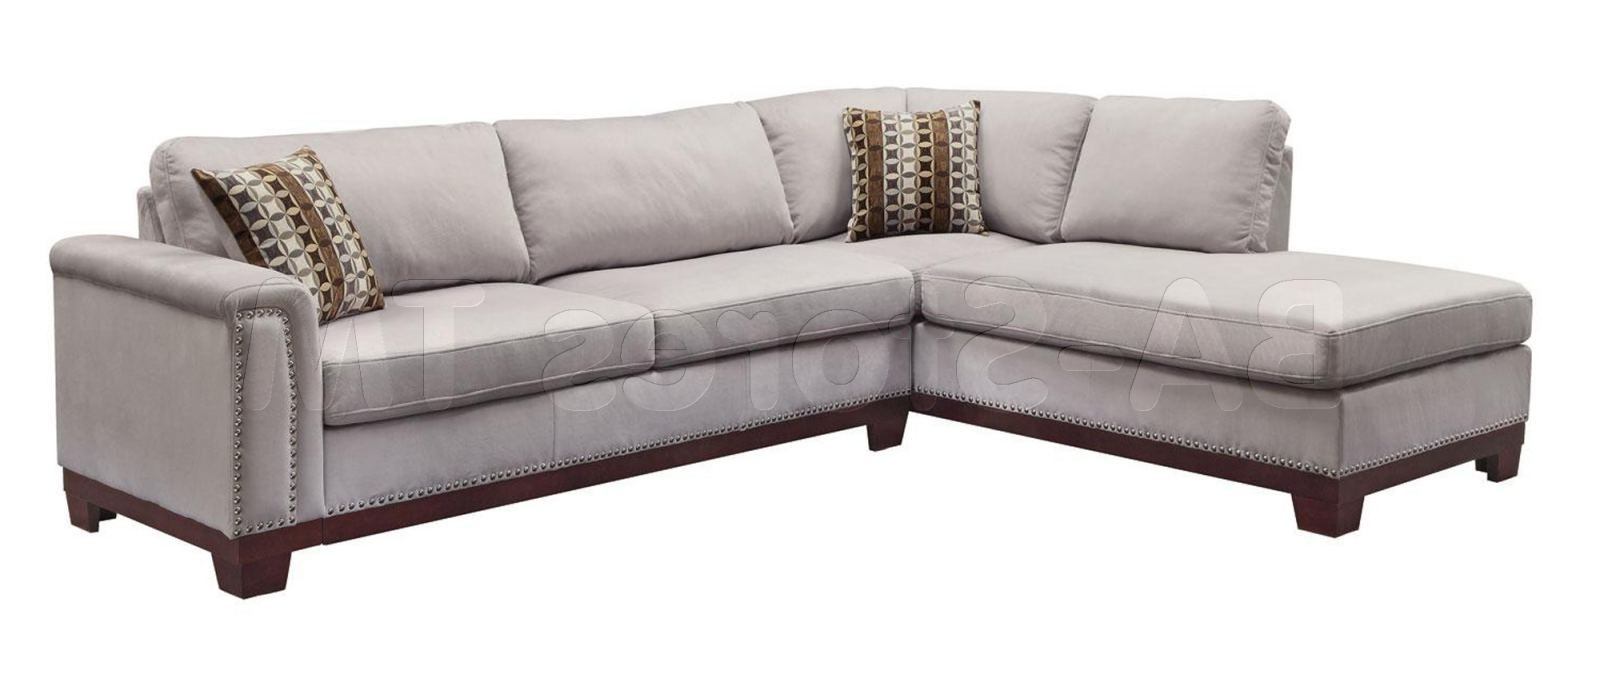 Fashionable Nailhead Trim Sectional Sofa #6 Click To Enlarge For Sectional Sofas With Nailheads (View 2 of 20)